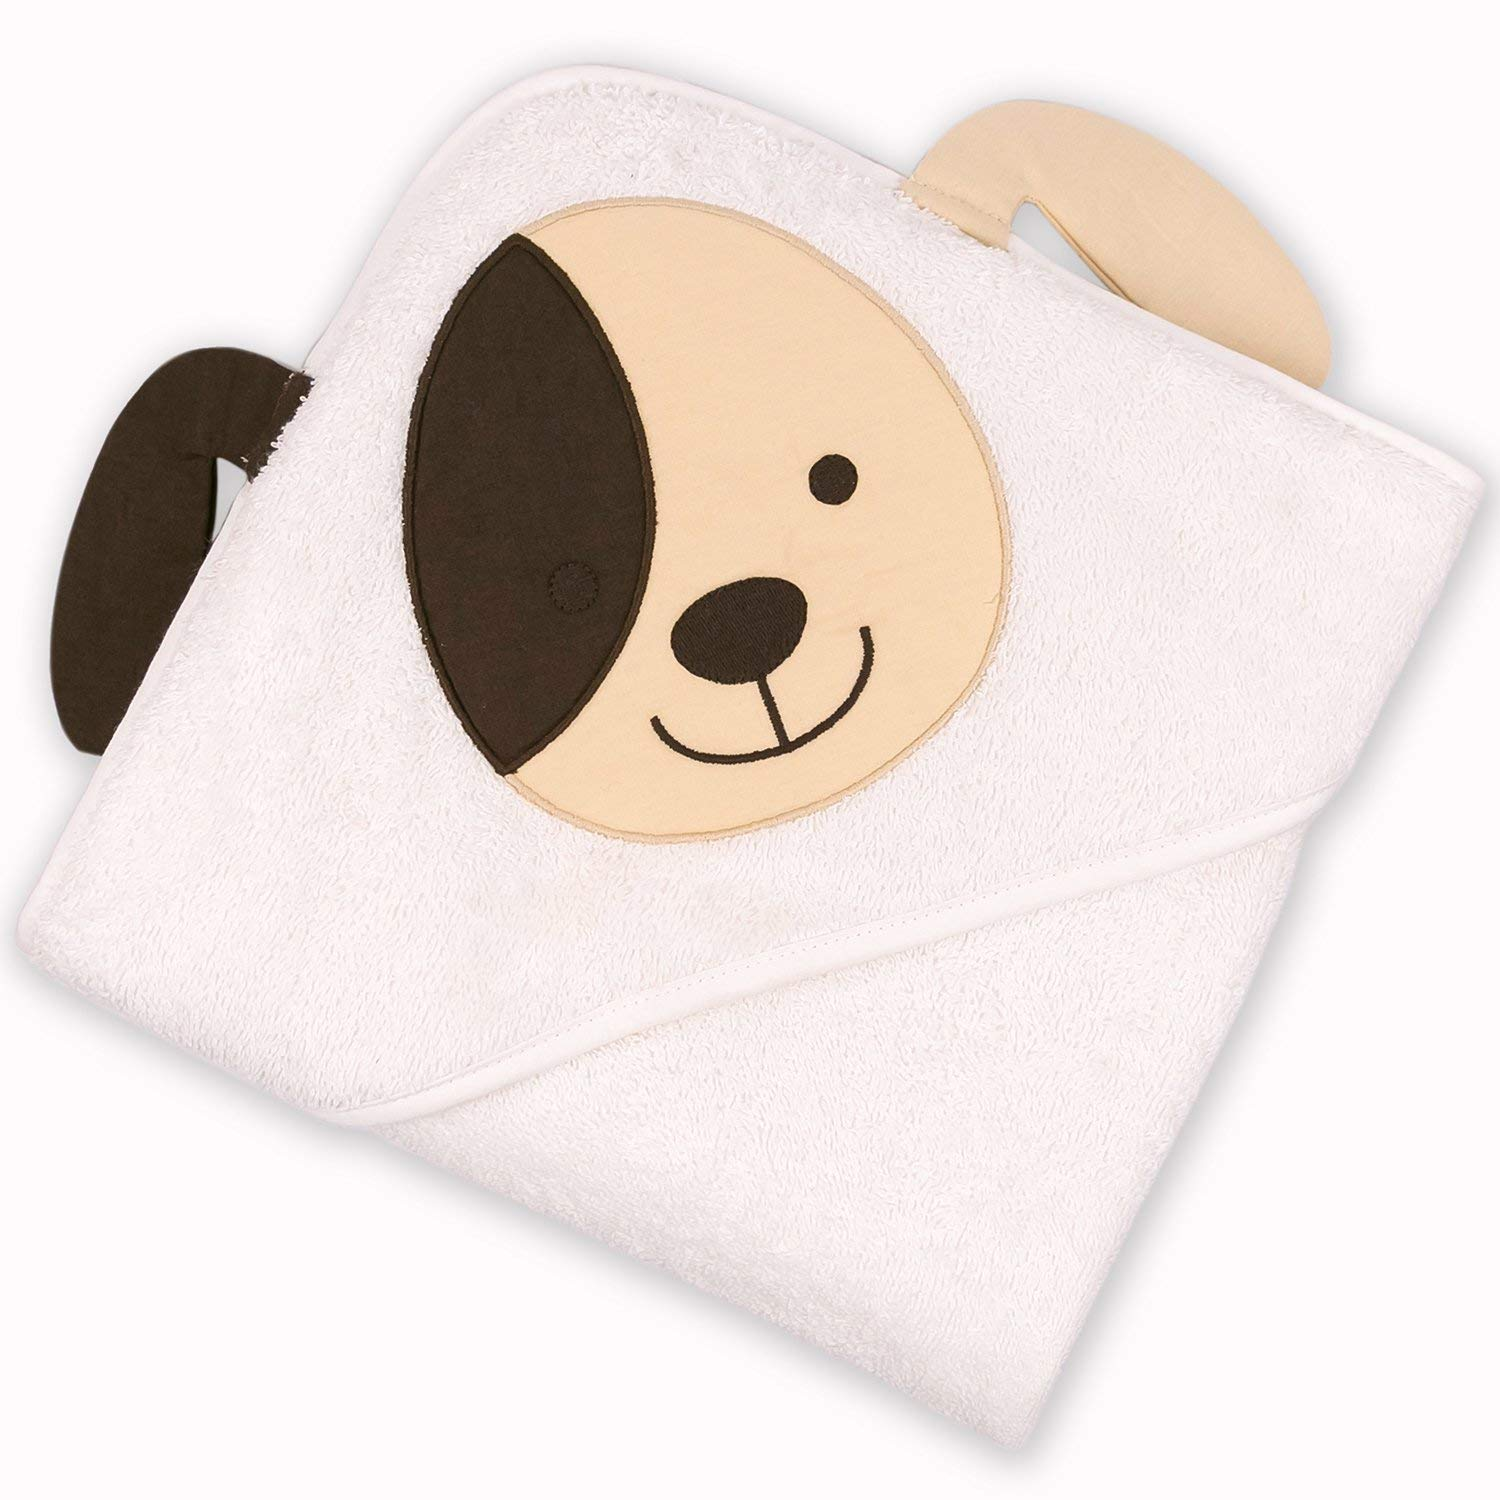 Babyshower gift Baby towel with hood for newborn and toddler Large Baby bath and beach towel baby towel soft. Organic towel baby